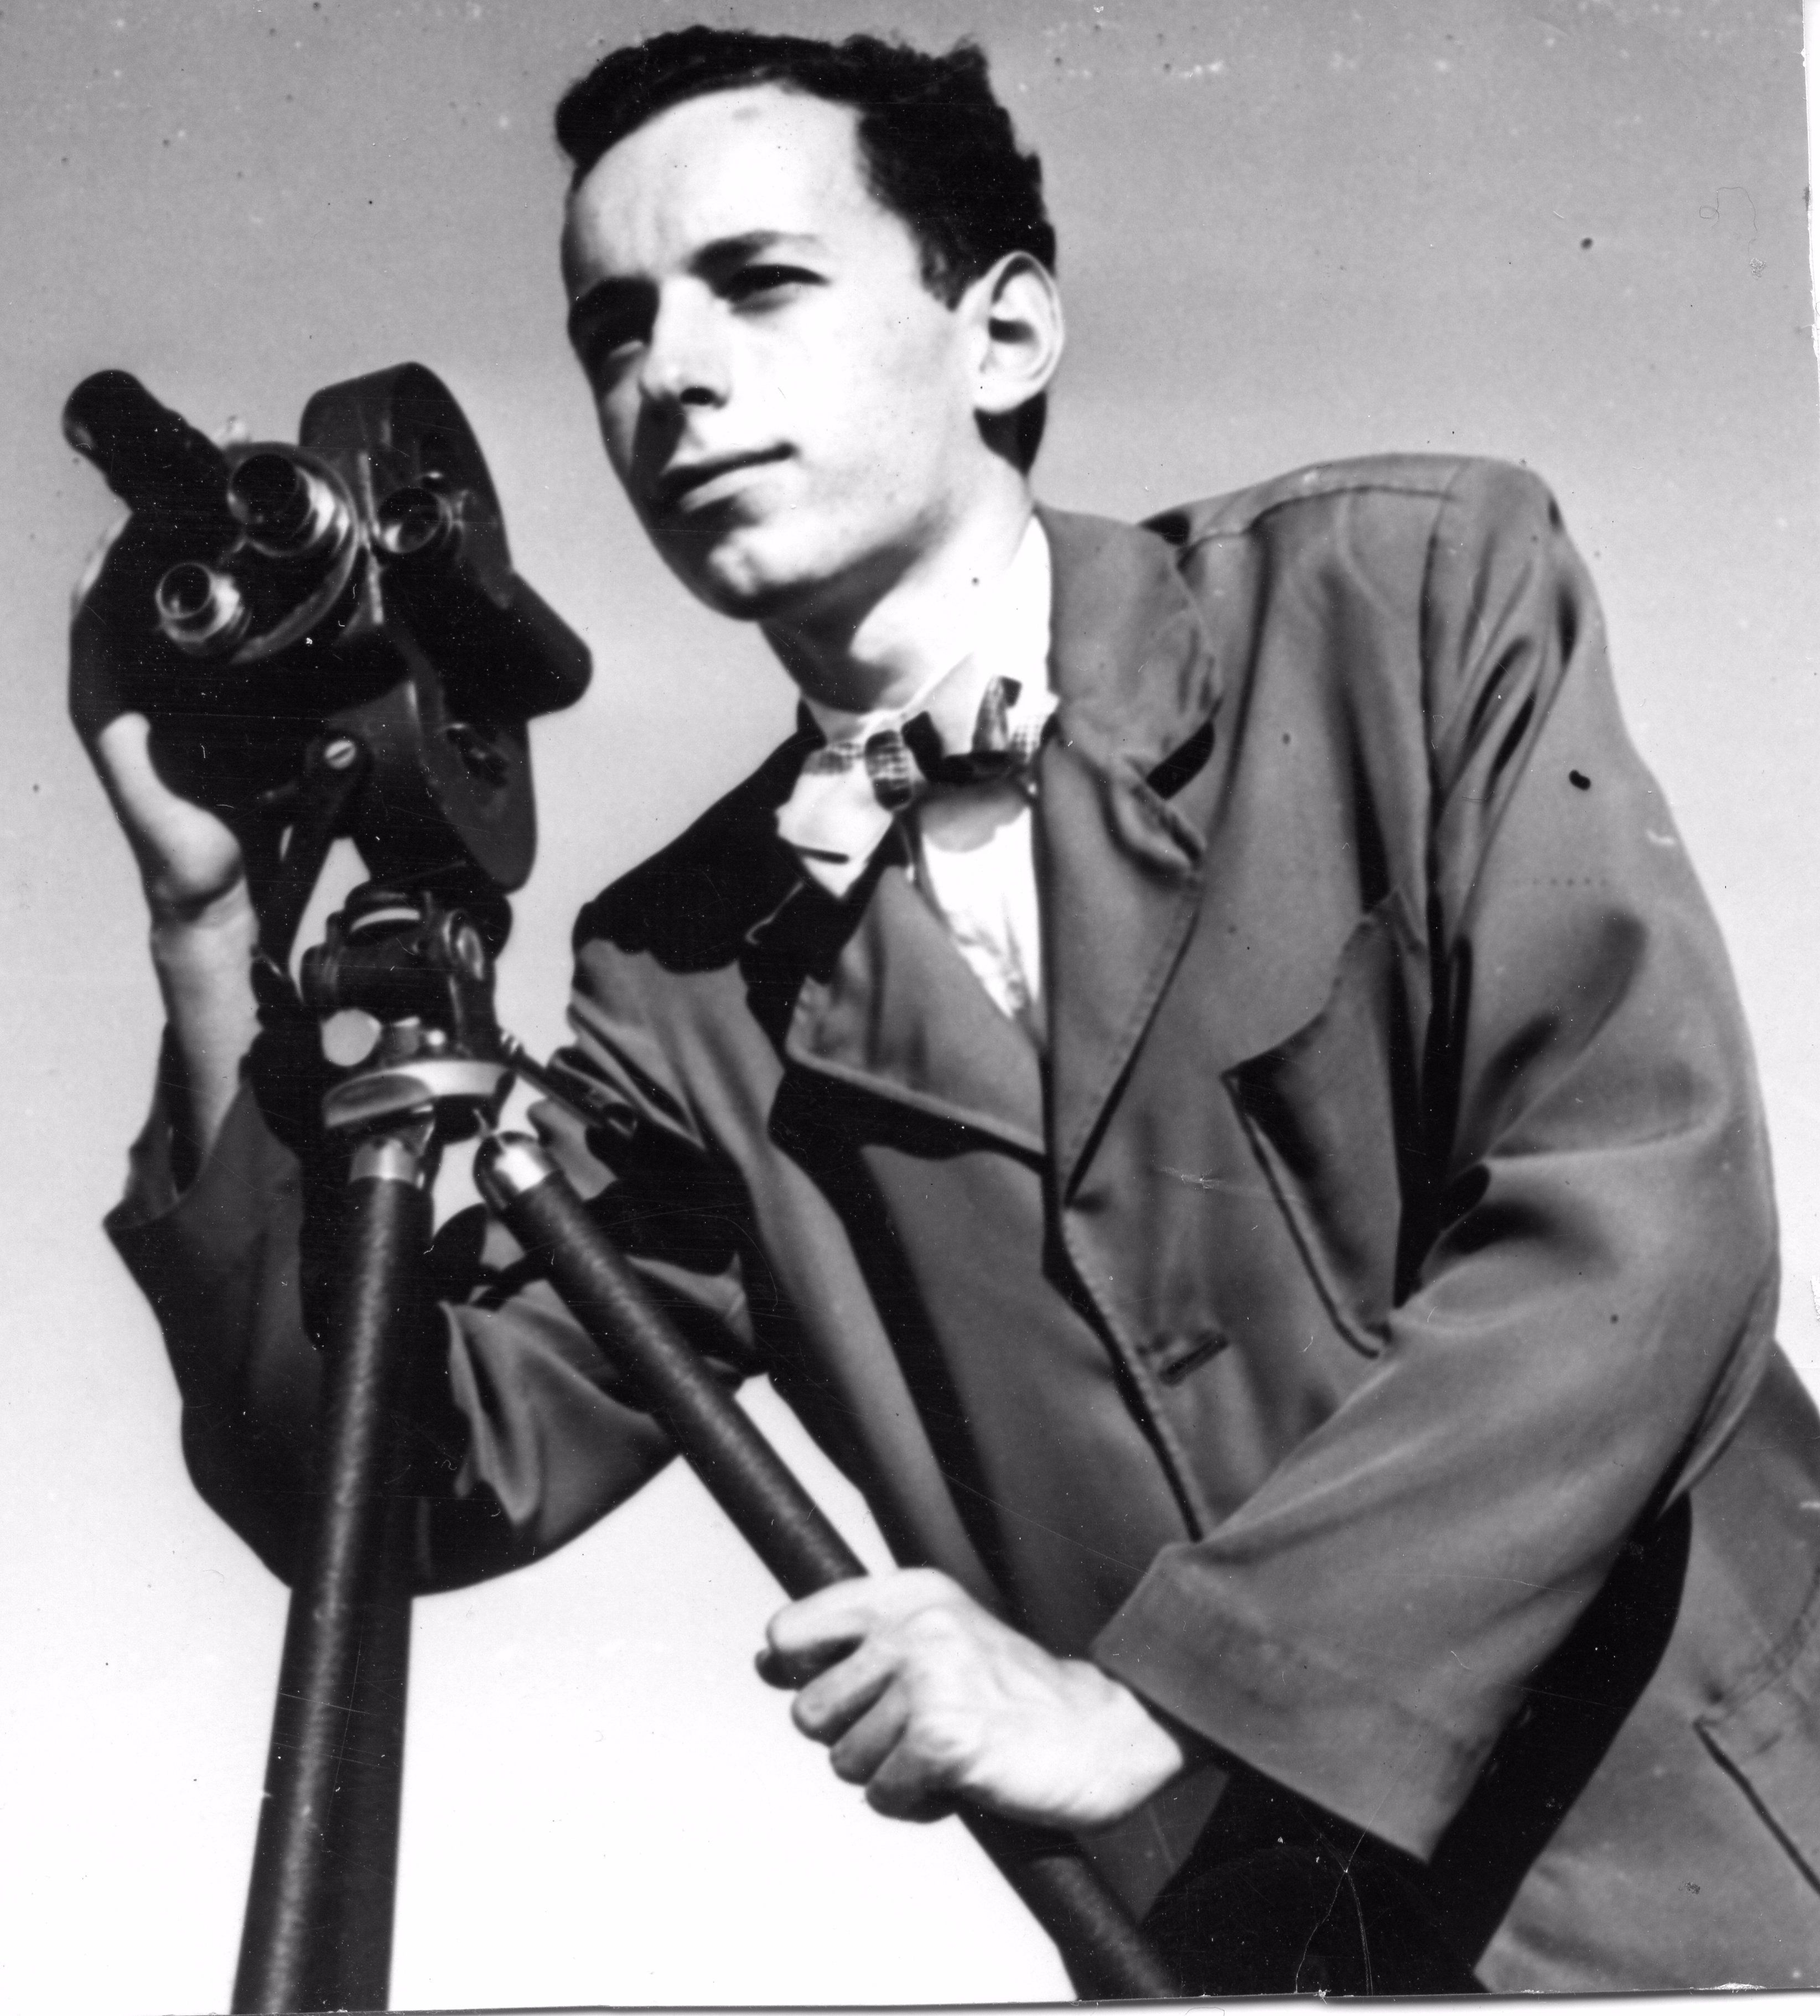 Portrait of the Author's Subject as a Young Man: Steven Faludi trains the sights of his camera.